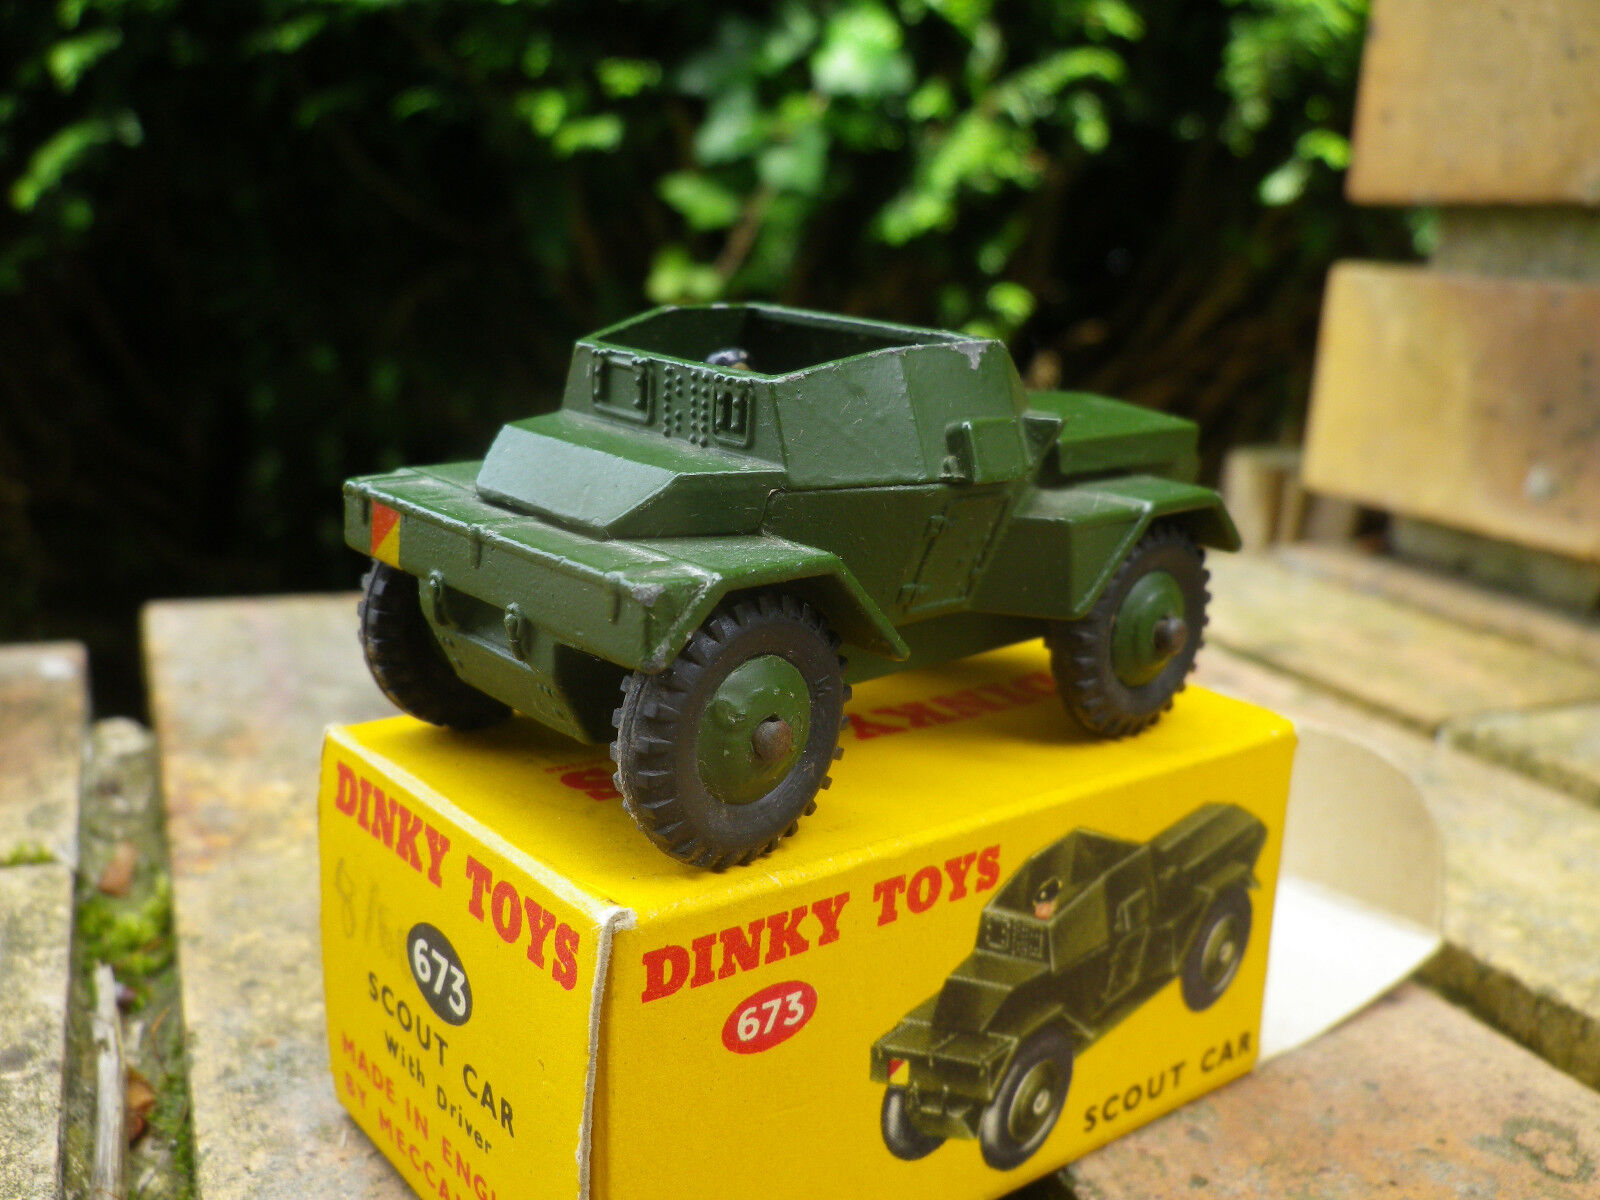 Dinky 673 scout car made in england years 60, like new in original box